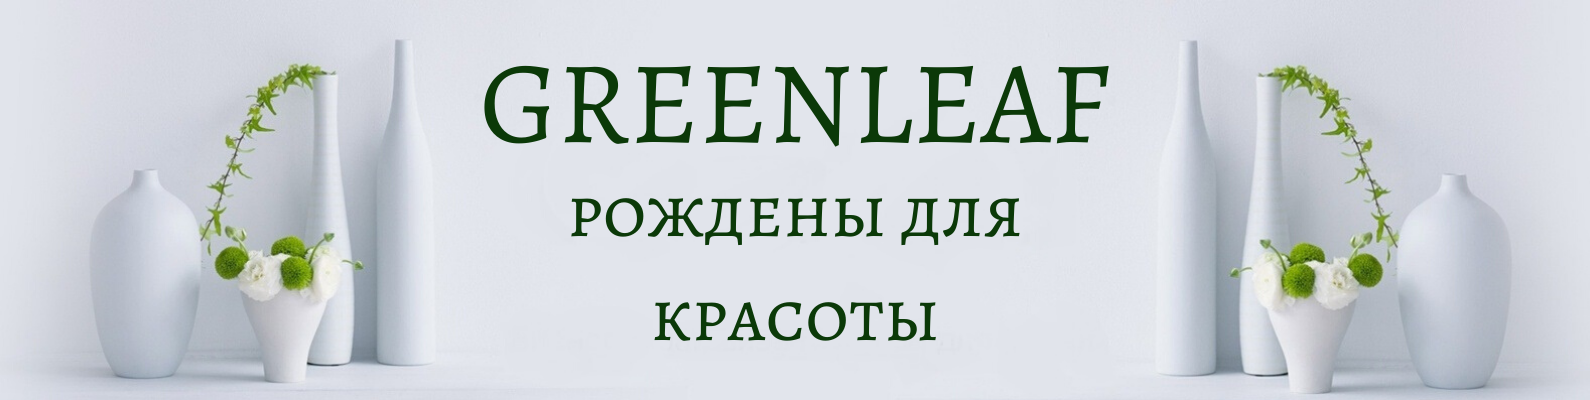 GREENLEAF (2)